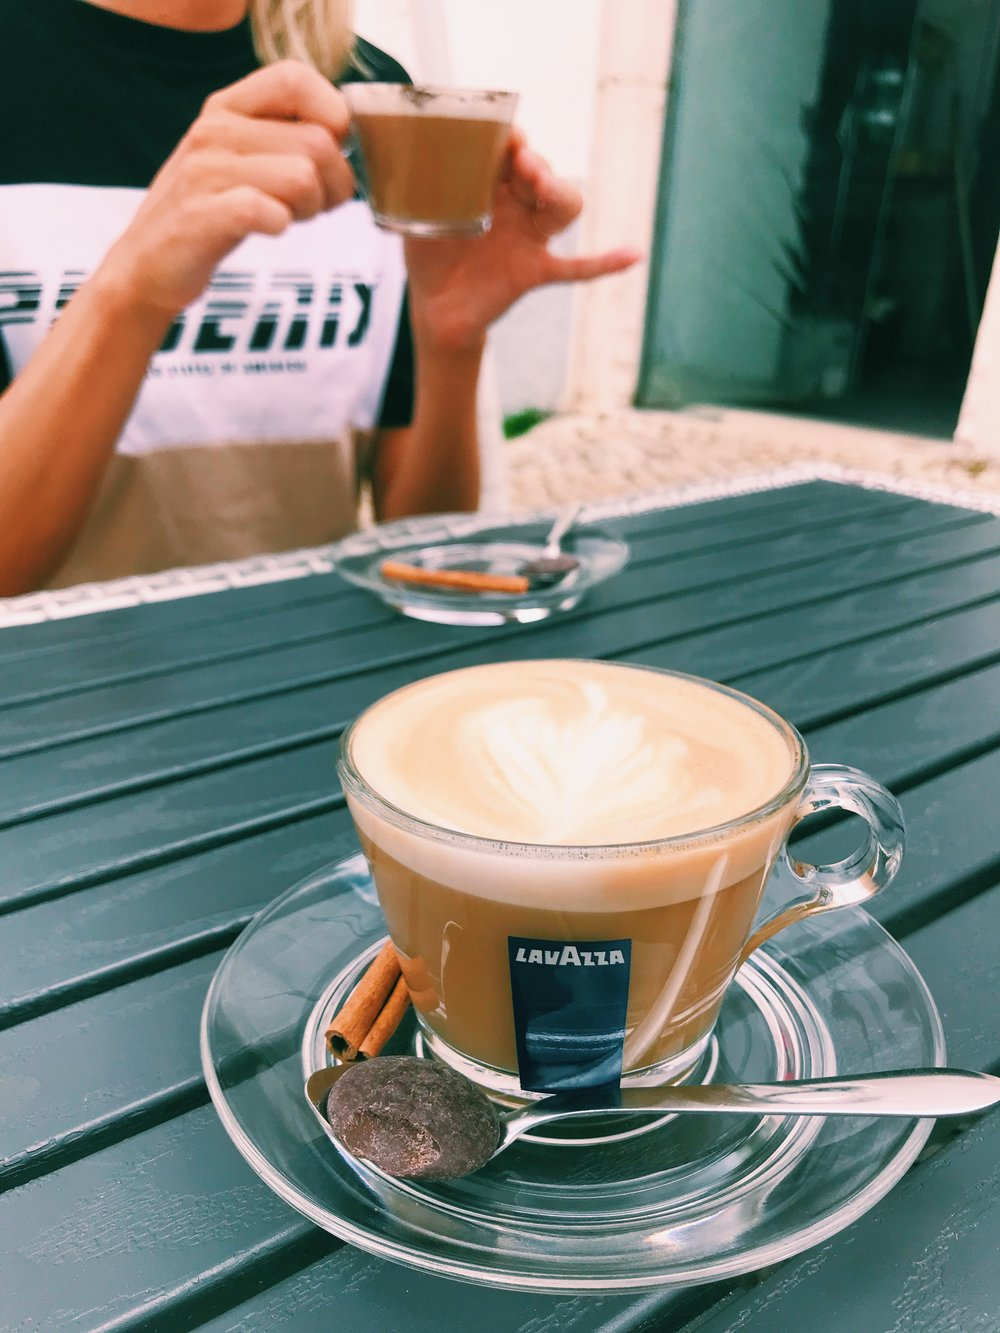 lavazza-coffee-lagos-portugal.jpg